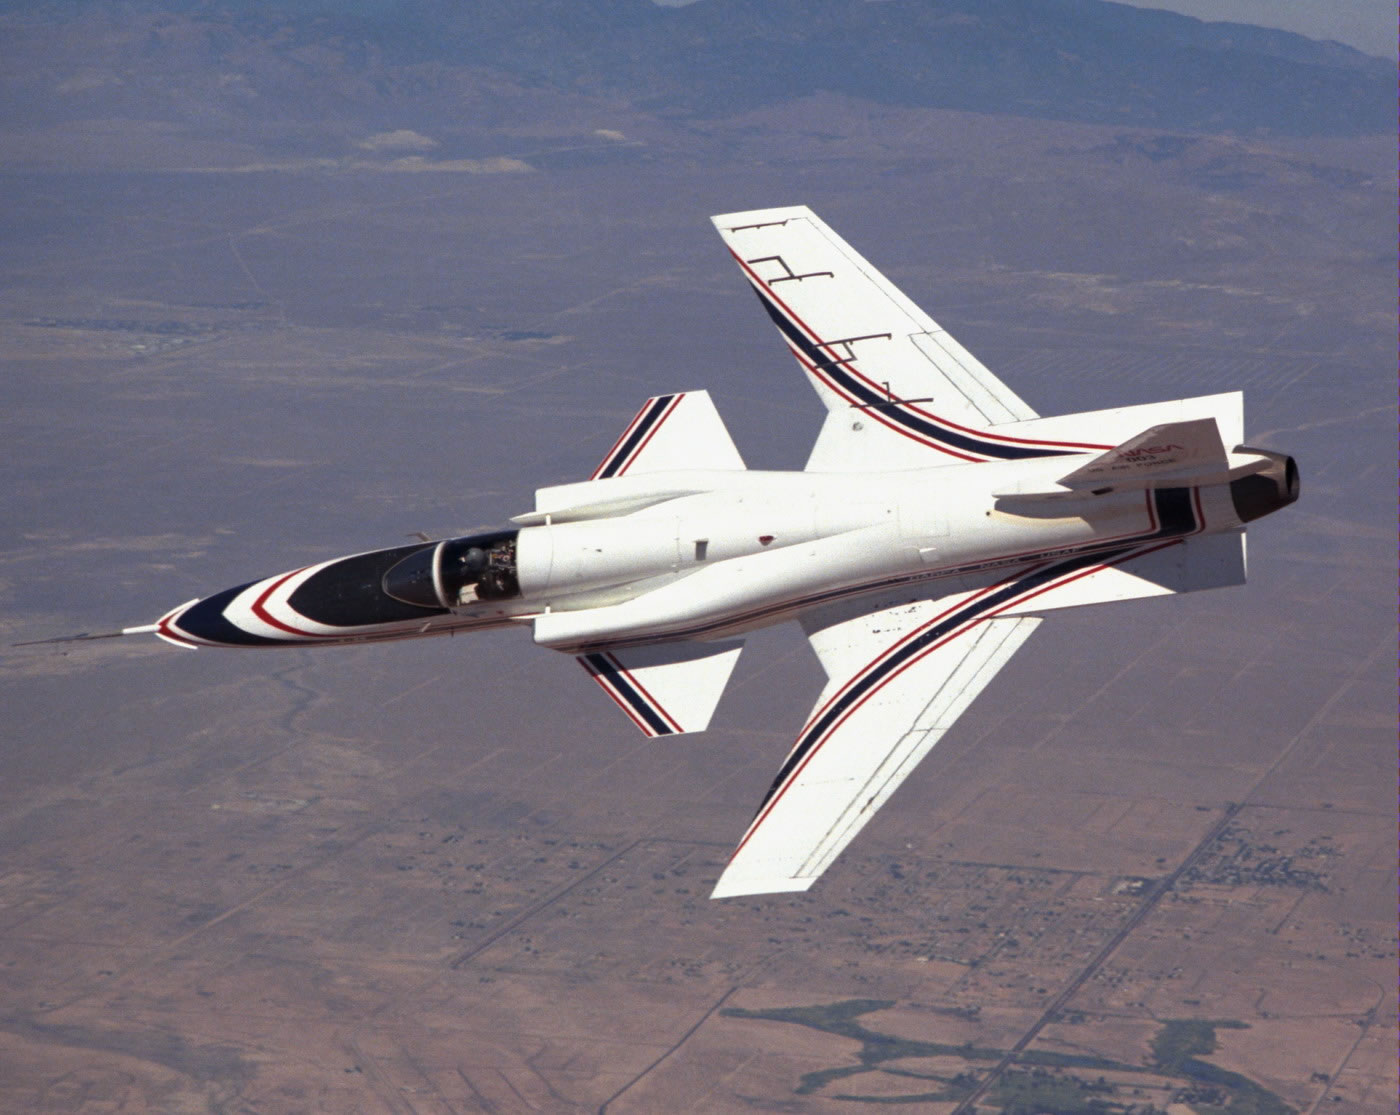 nasa fighter aircraft - photo #29